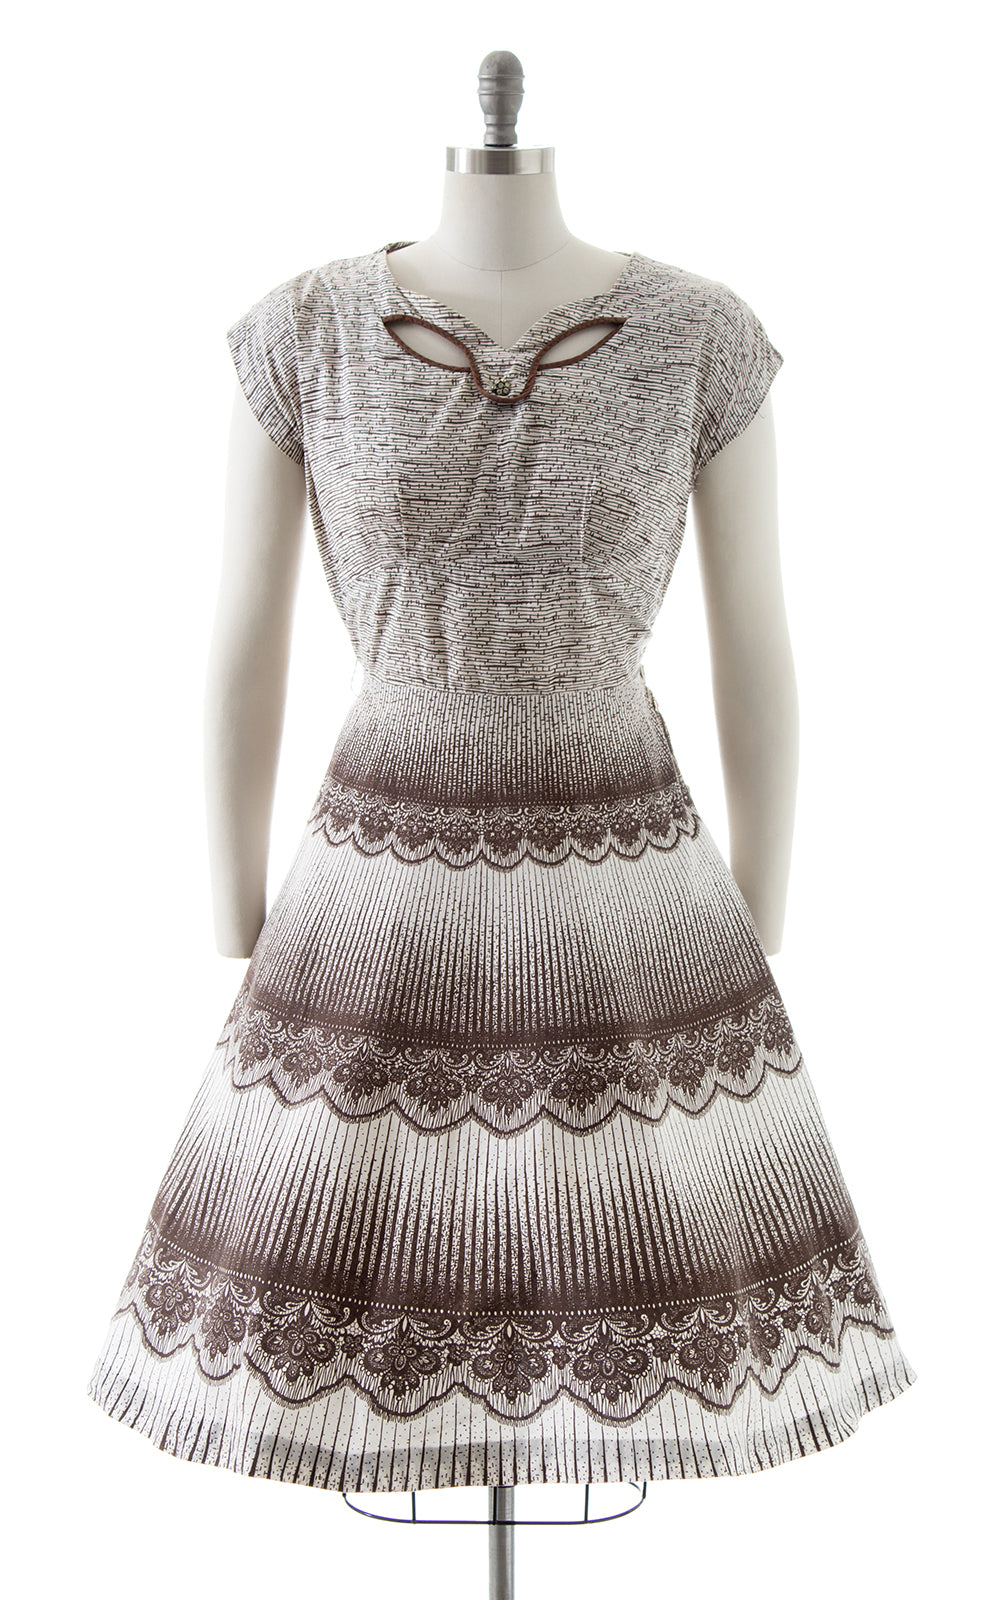 1950s Lace Trompe L'oeil Dress